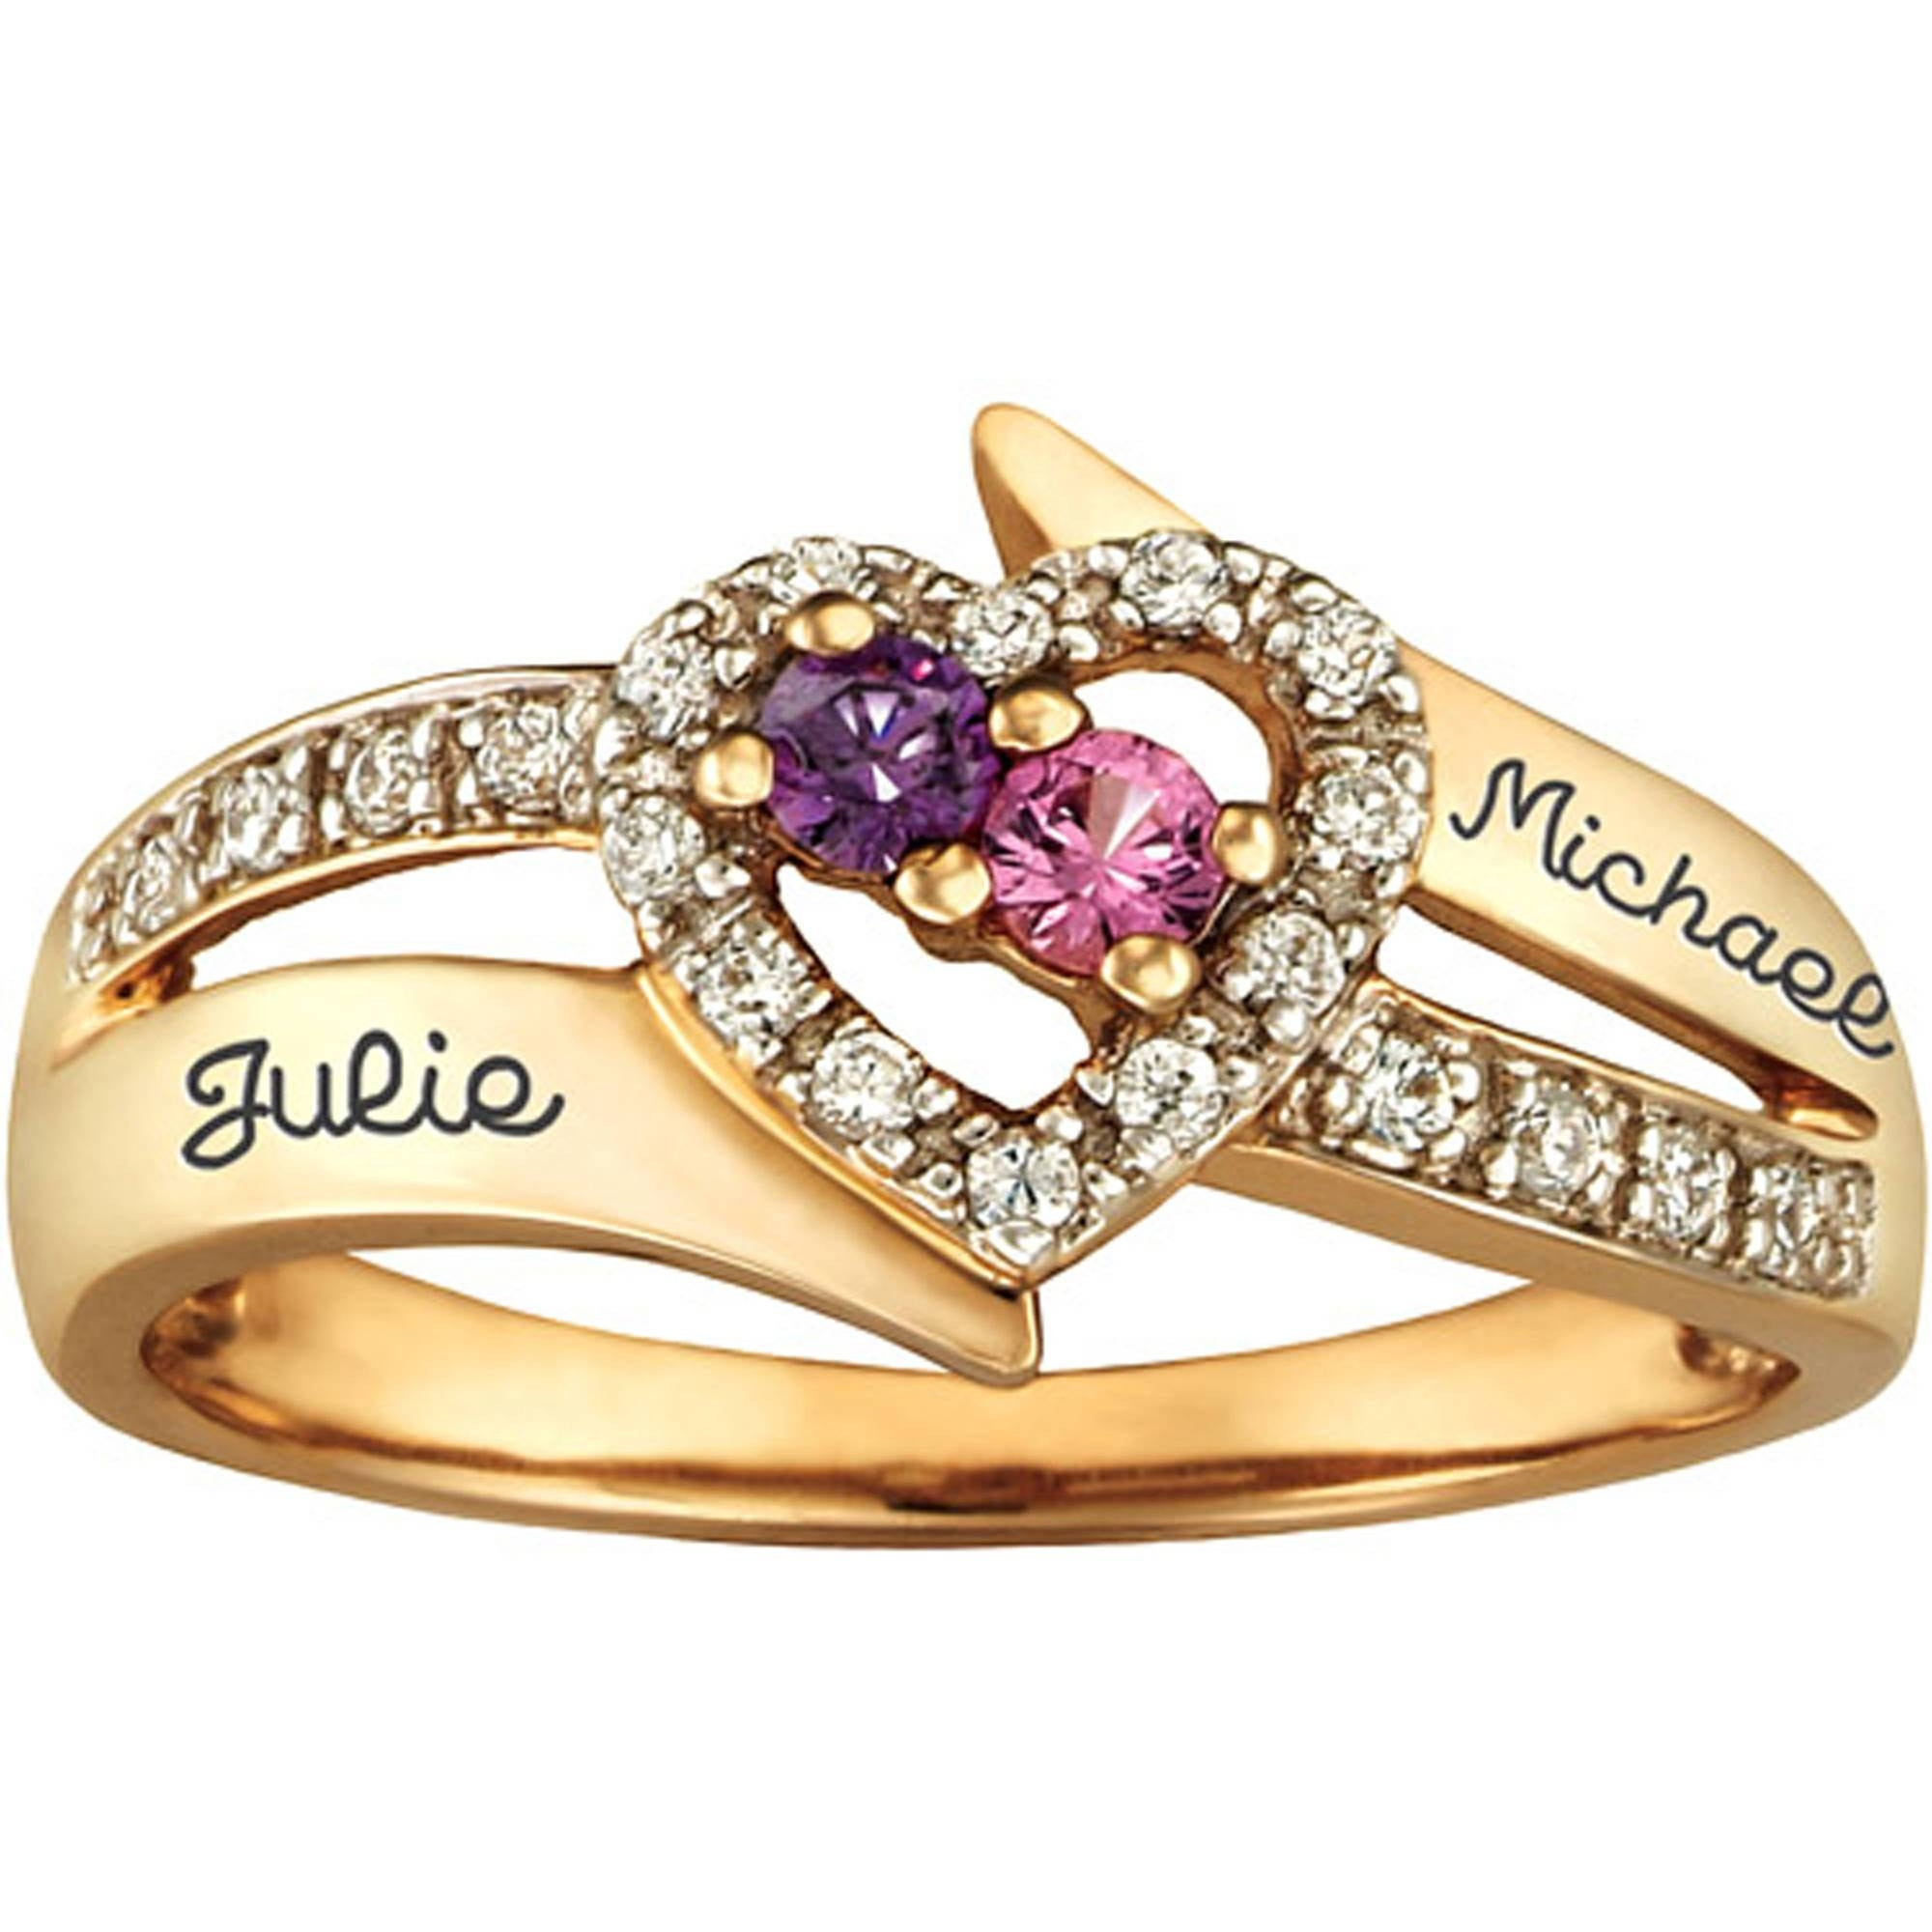 Personalized Keepsake Enchantment Promise Ring With Birthstones In Walmart Keepsake Engagement Rings (View 12 of 15)